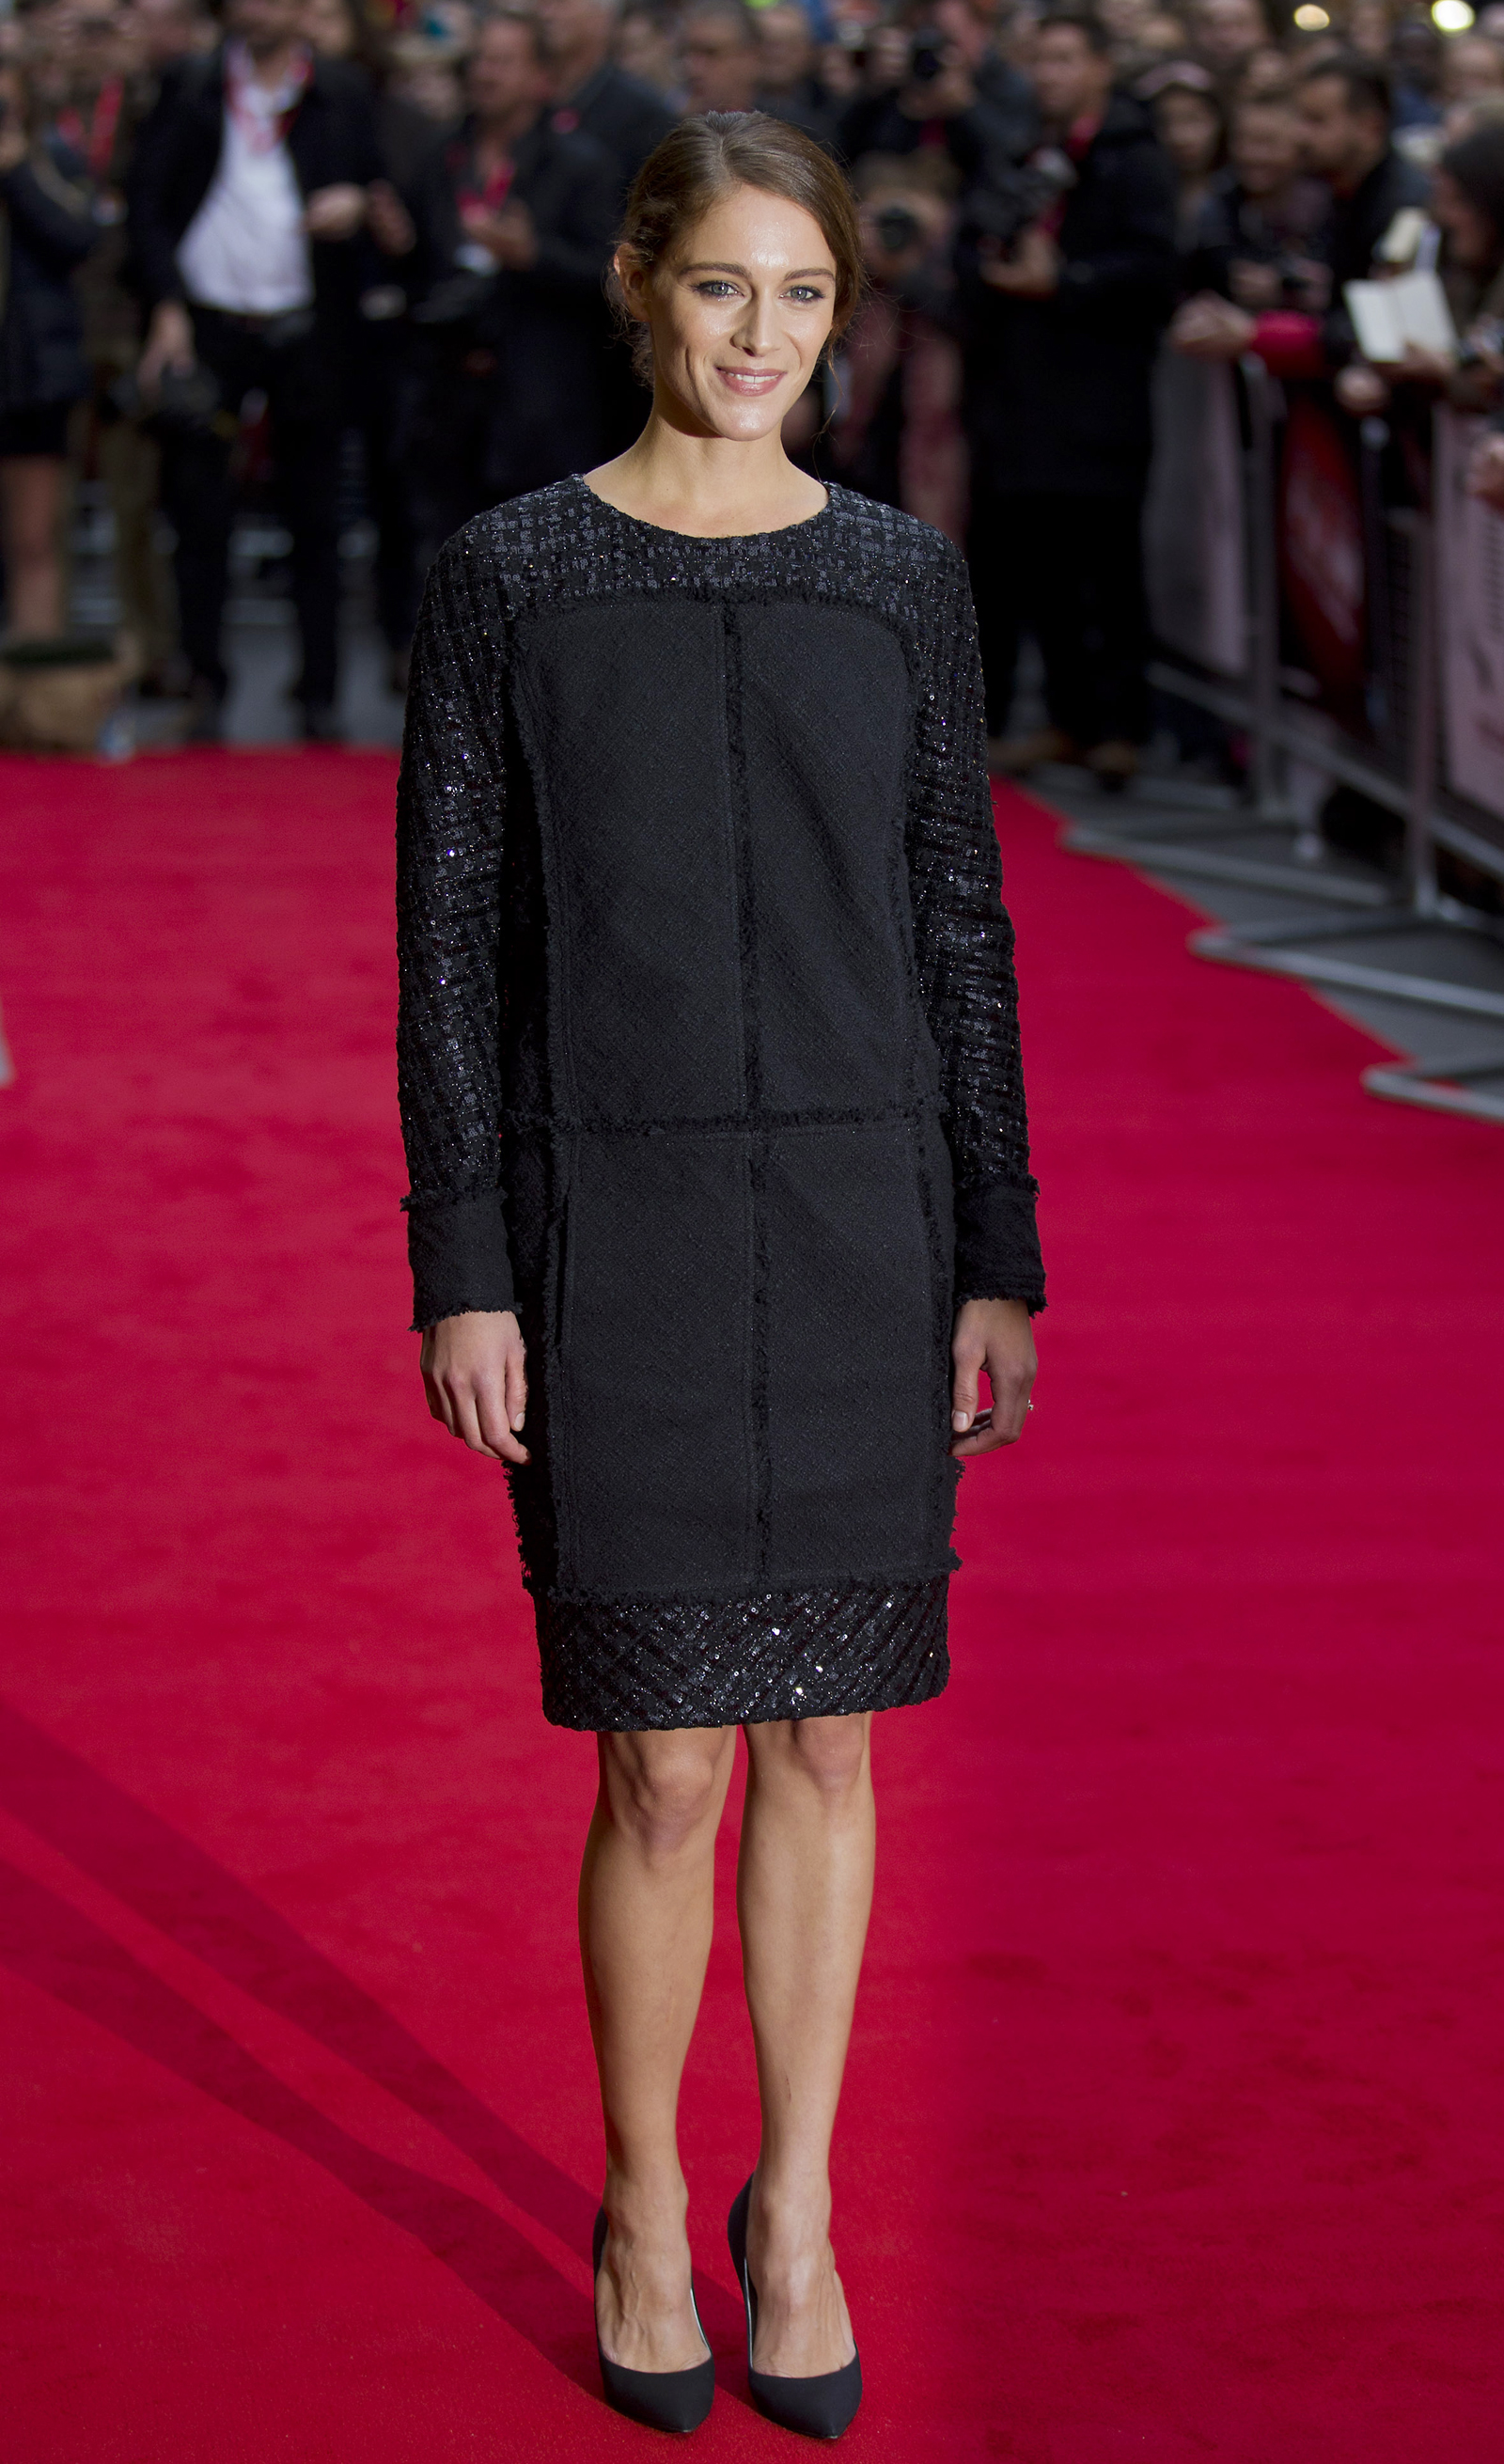 """French actress Ariane Labed arrives to attend the premiere of the film """"The Lobster"""", during the BFI London Film Festival in London on October 13, 2015. AFP PHOTO / JUSTIN TALLIS"""